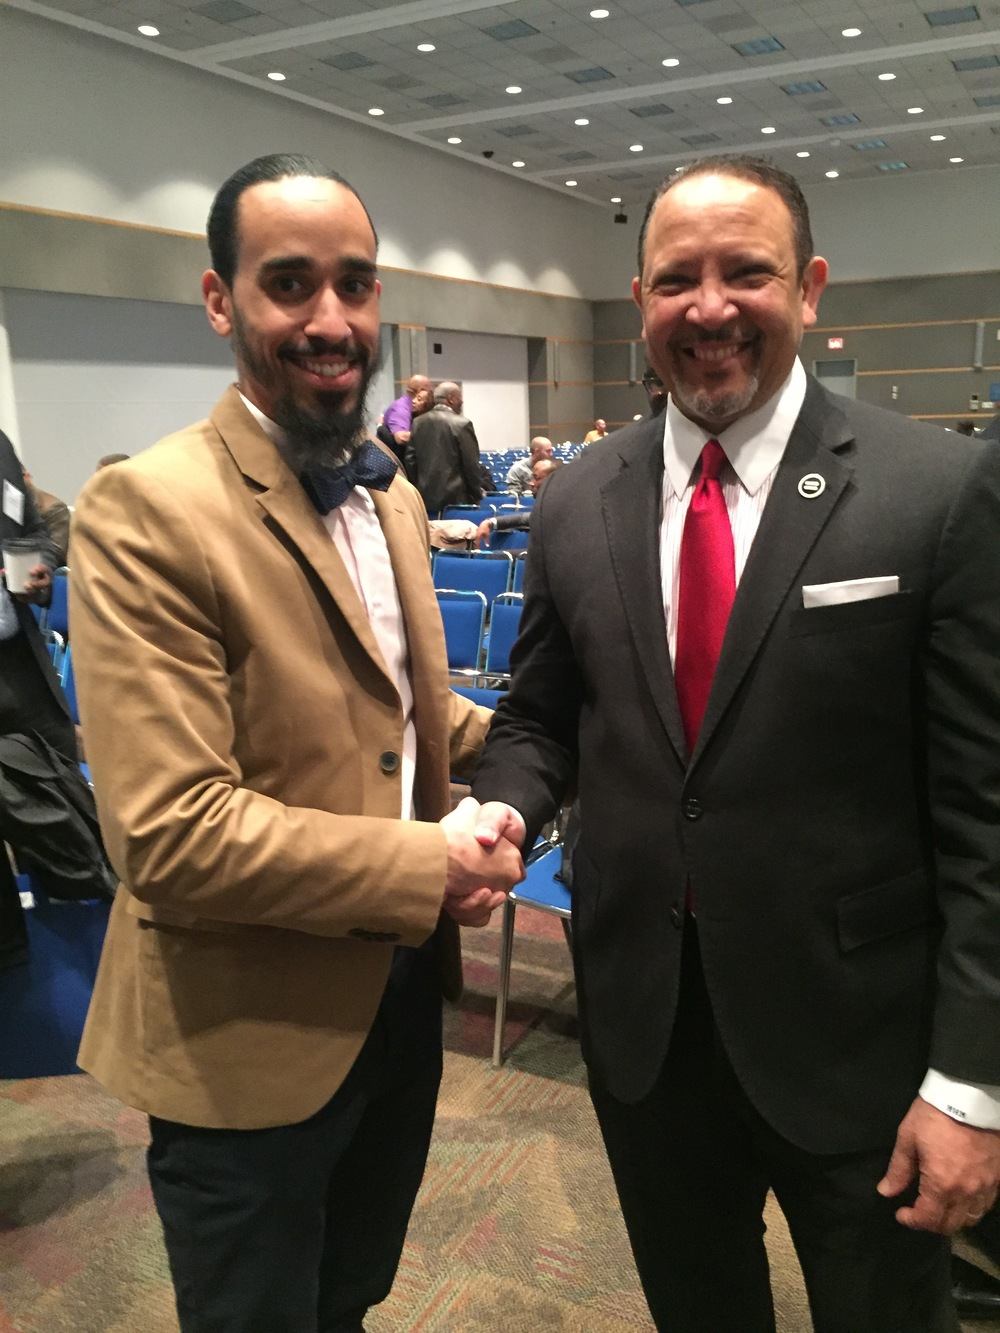 Copy of Urban League President, Marc Morial